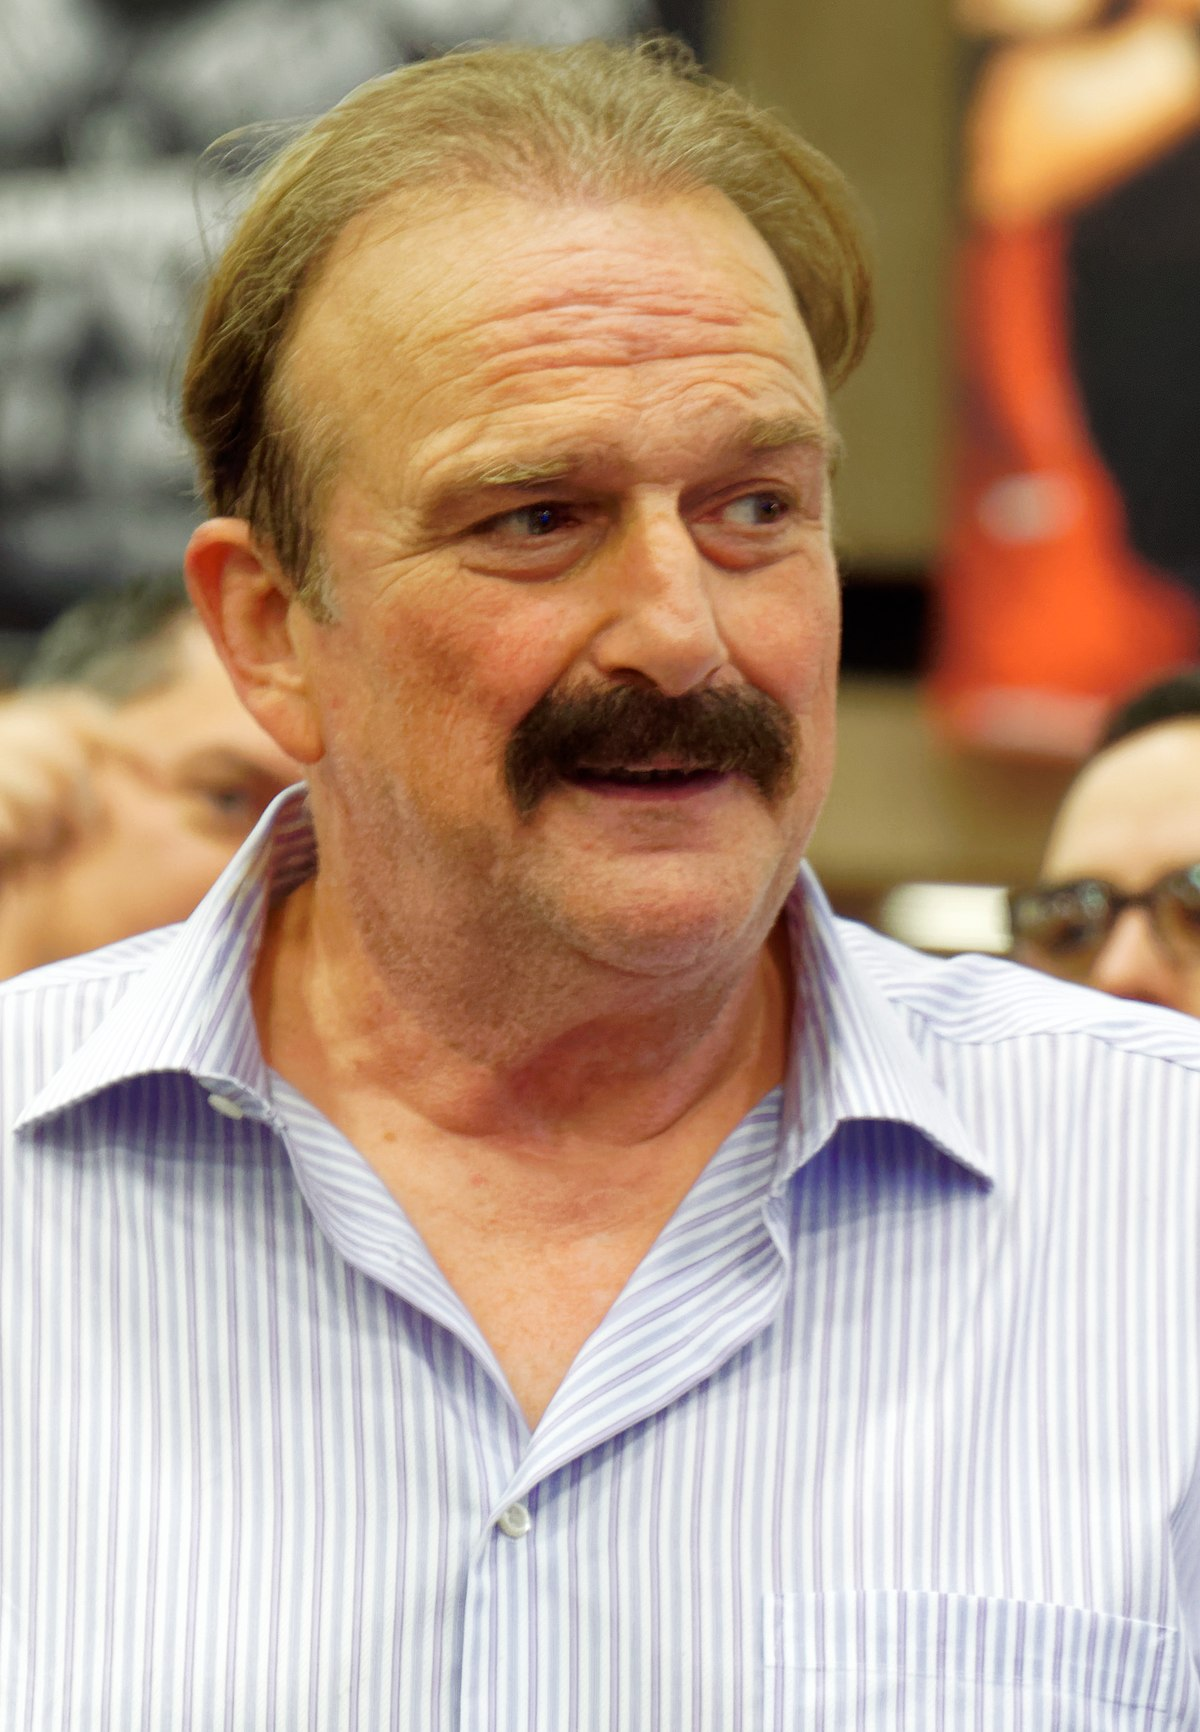 Jake Roberts net worth